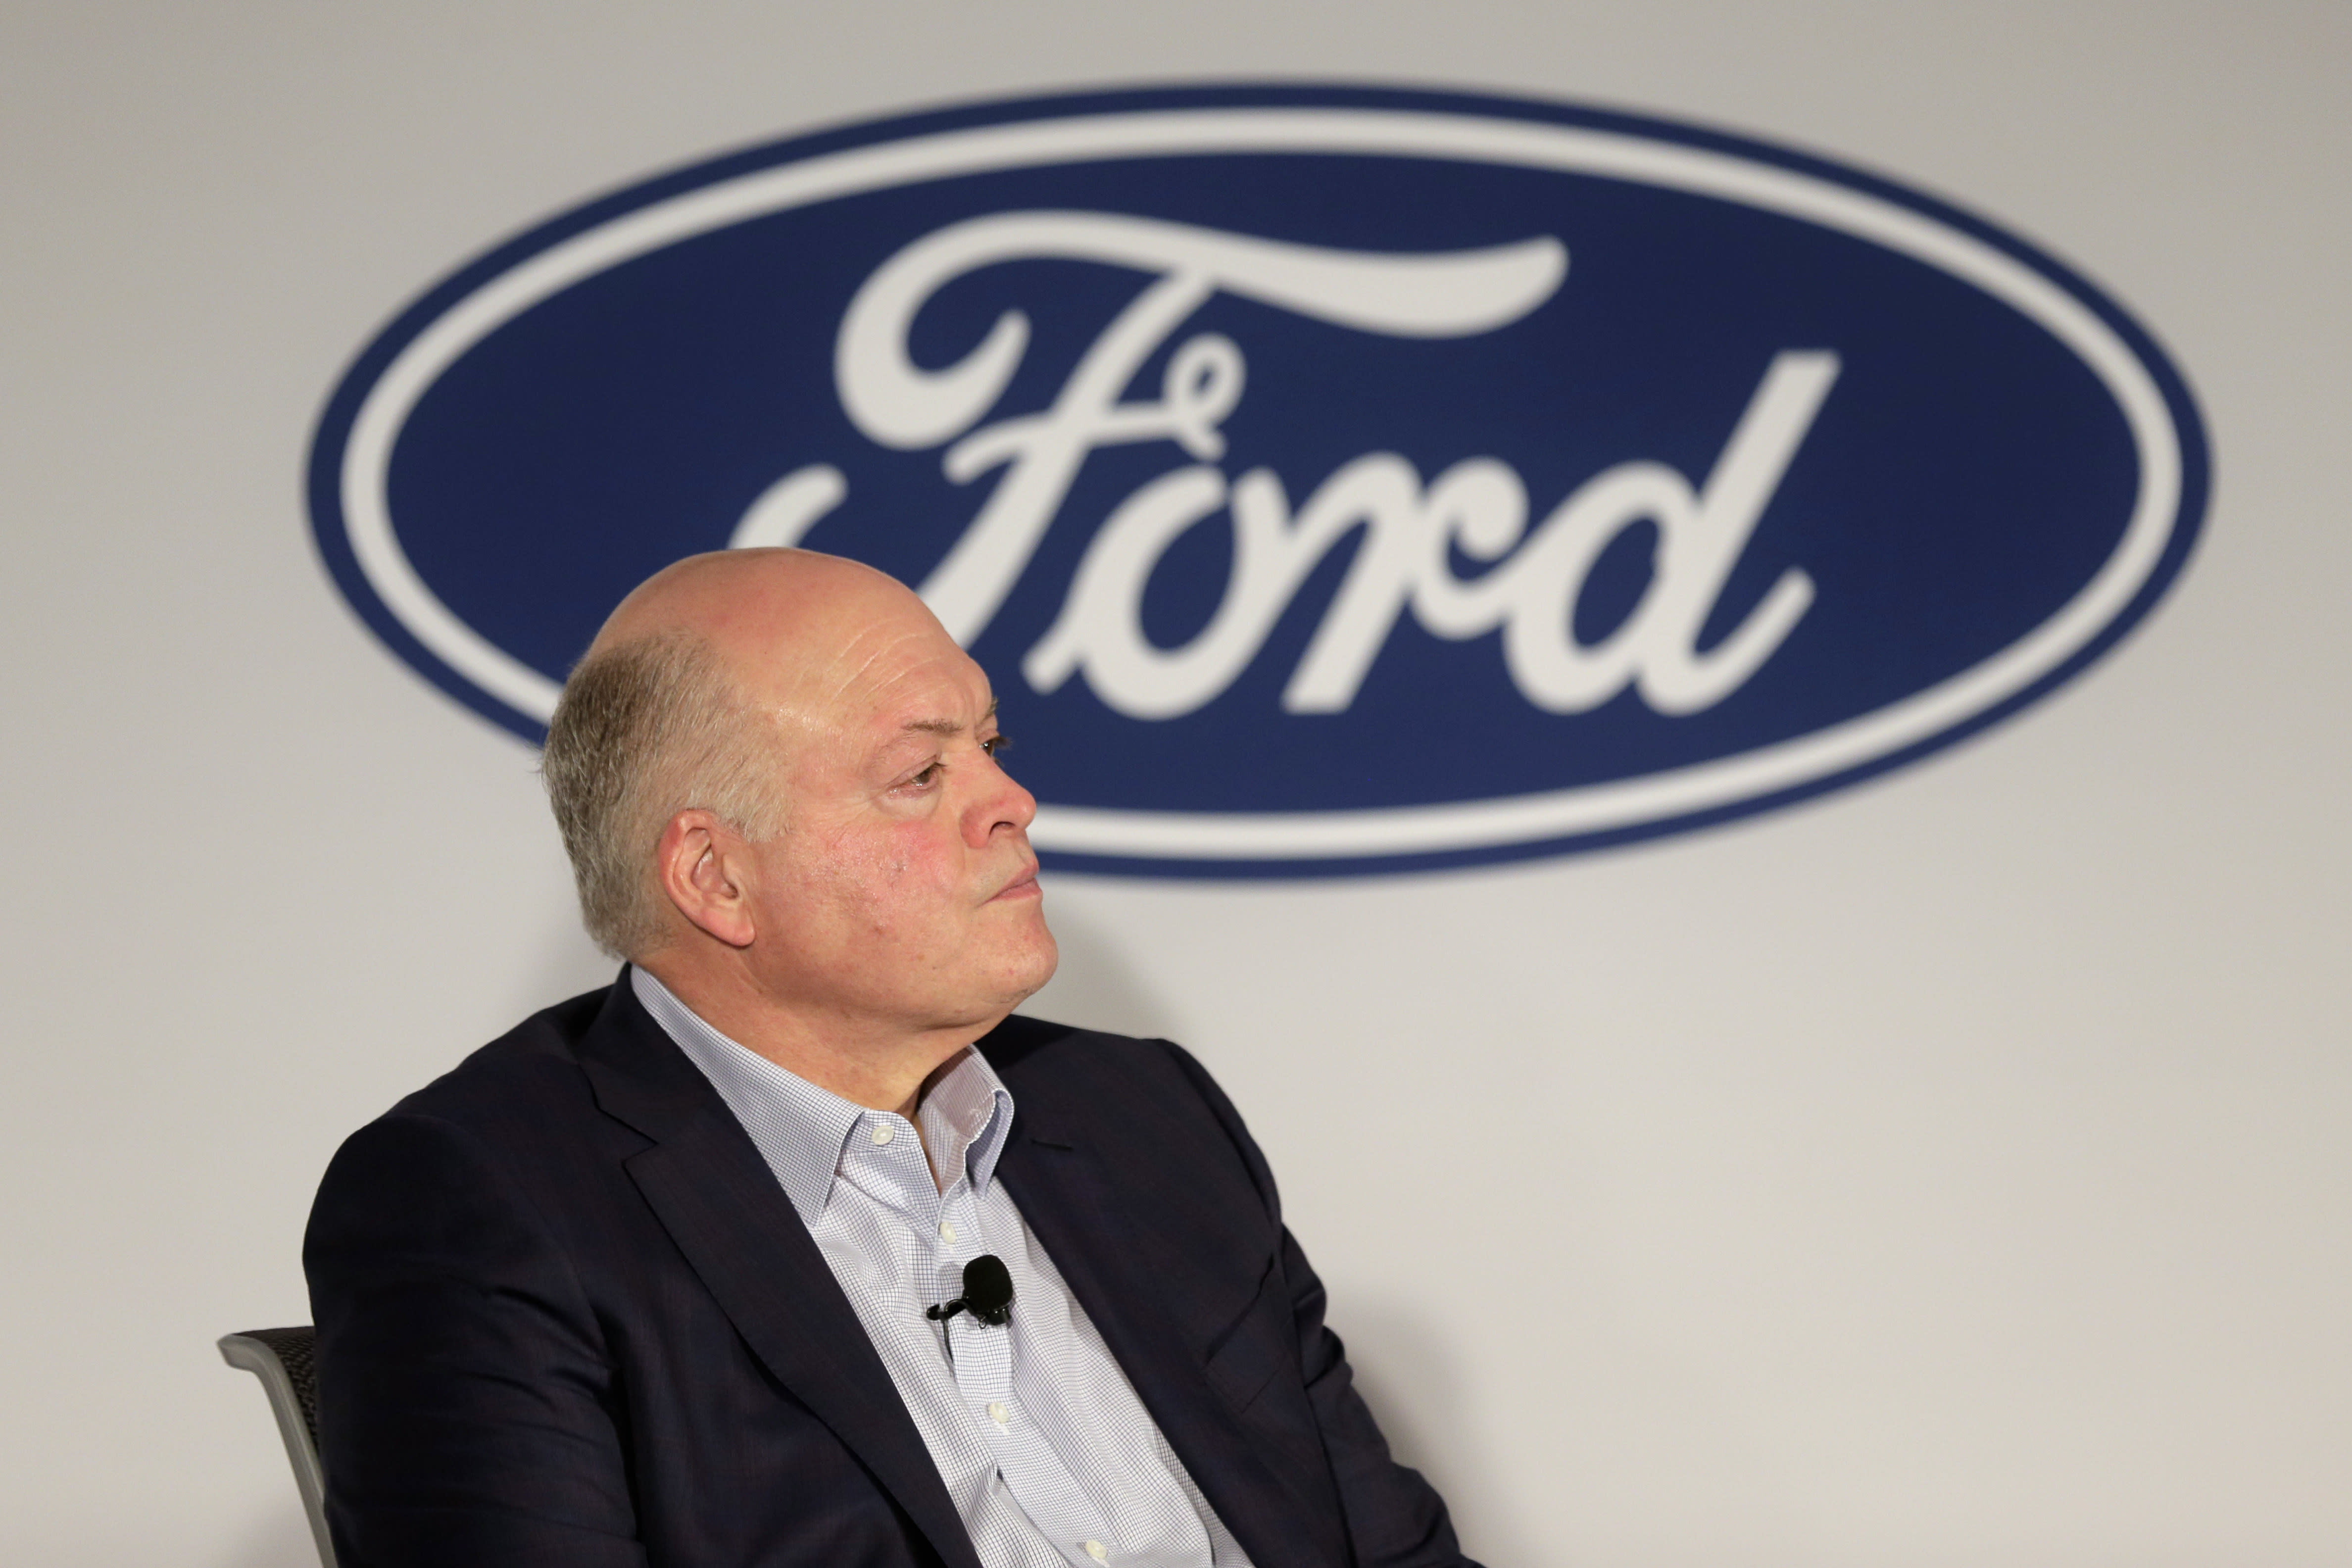 FILE - In this July 12, 2019, file photo Ford CEO Jim Hackett participates in a news conference in New York. Ford Motor Co. reports earning on Wednesday, July 24, 2019. (AP Photo/Seth Wenig, File)